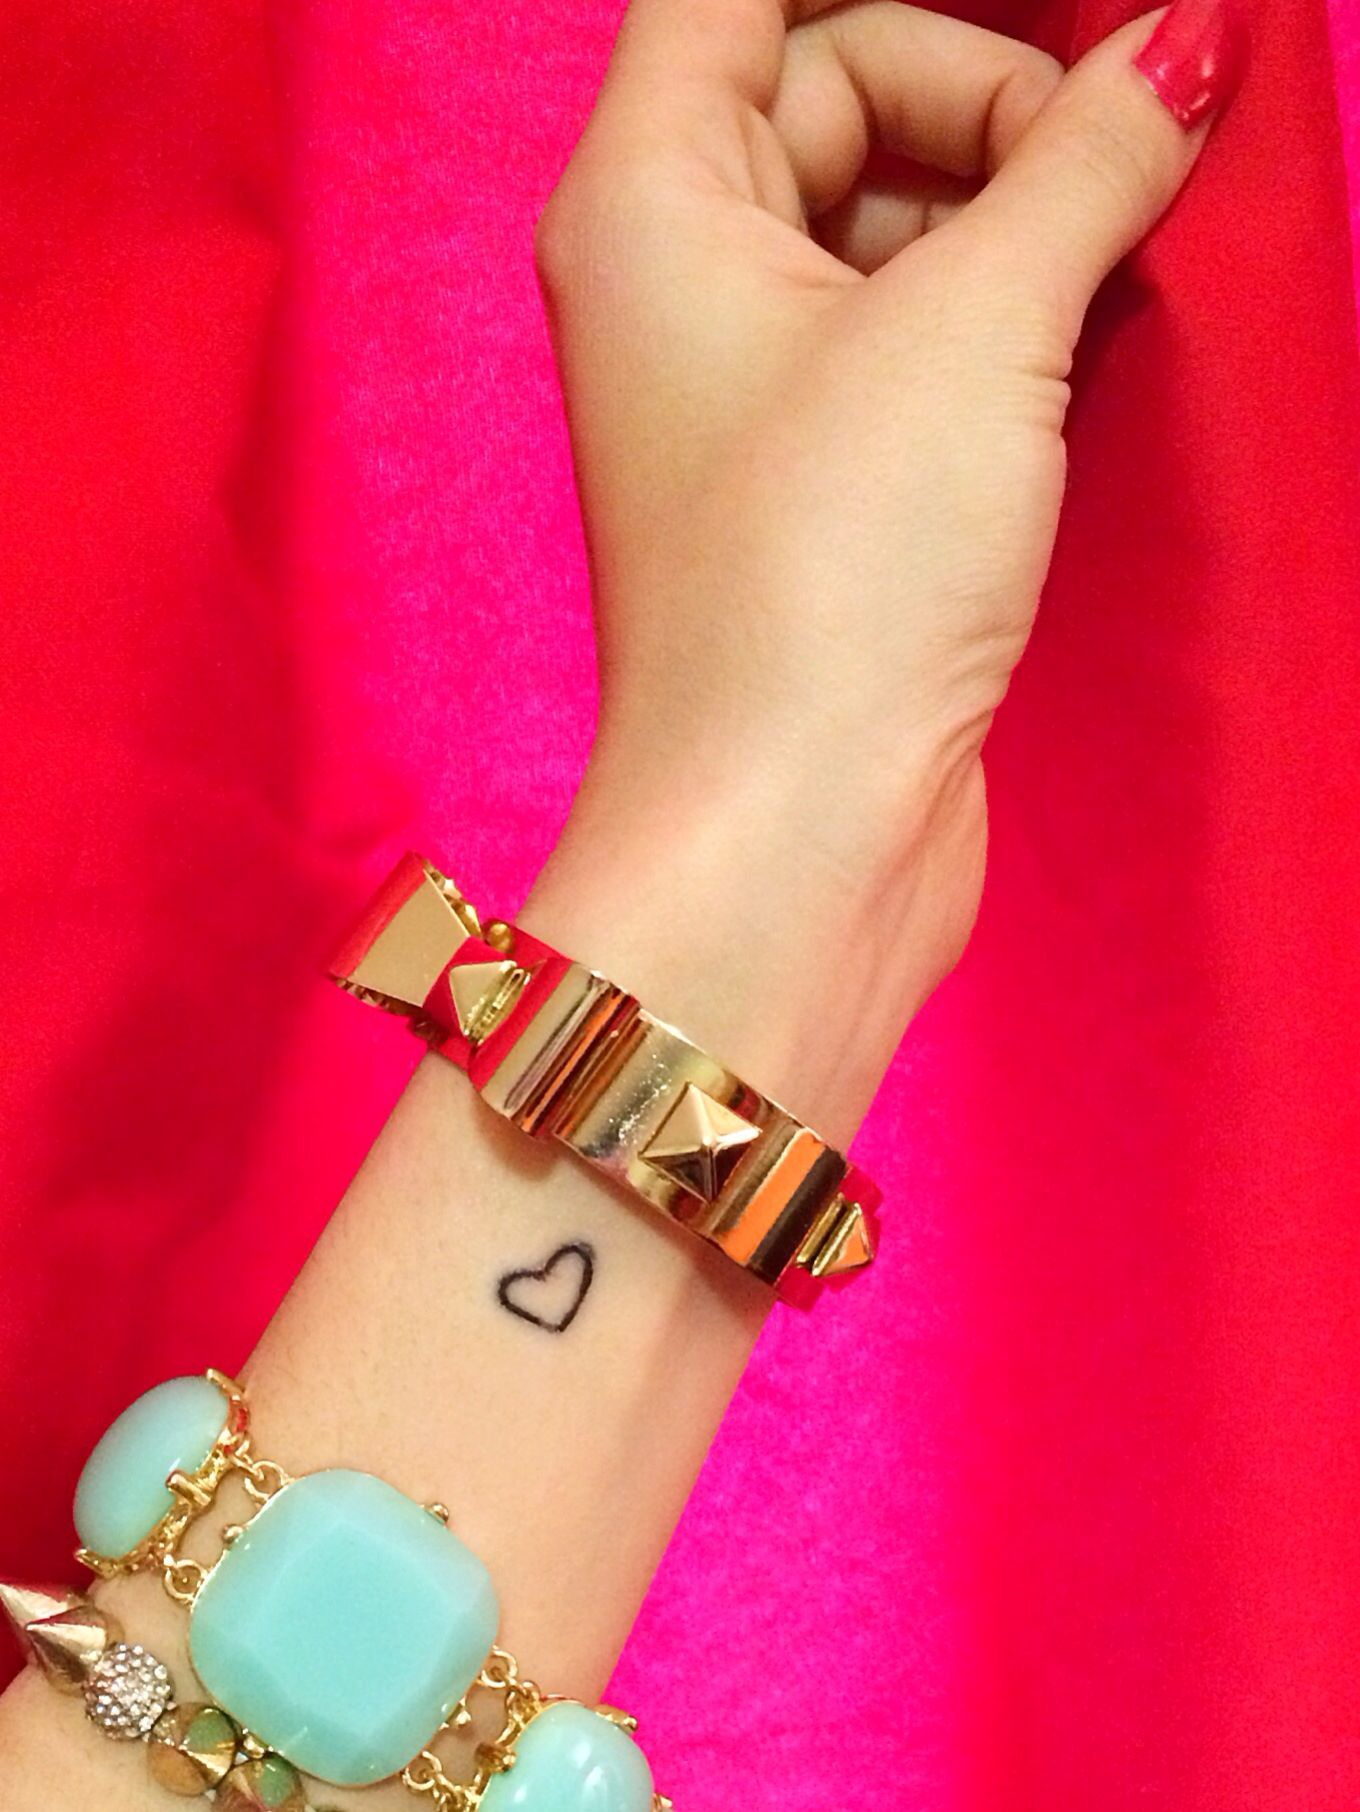 First tattoo idea, but on other hand Small heart wrist